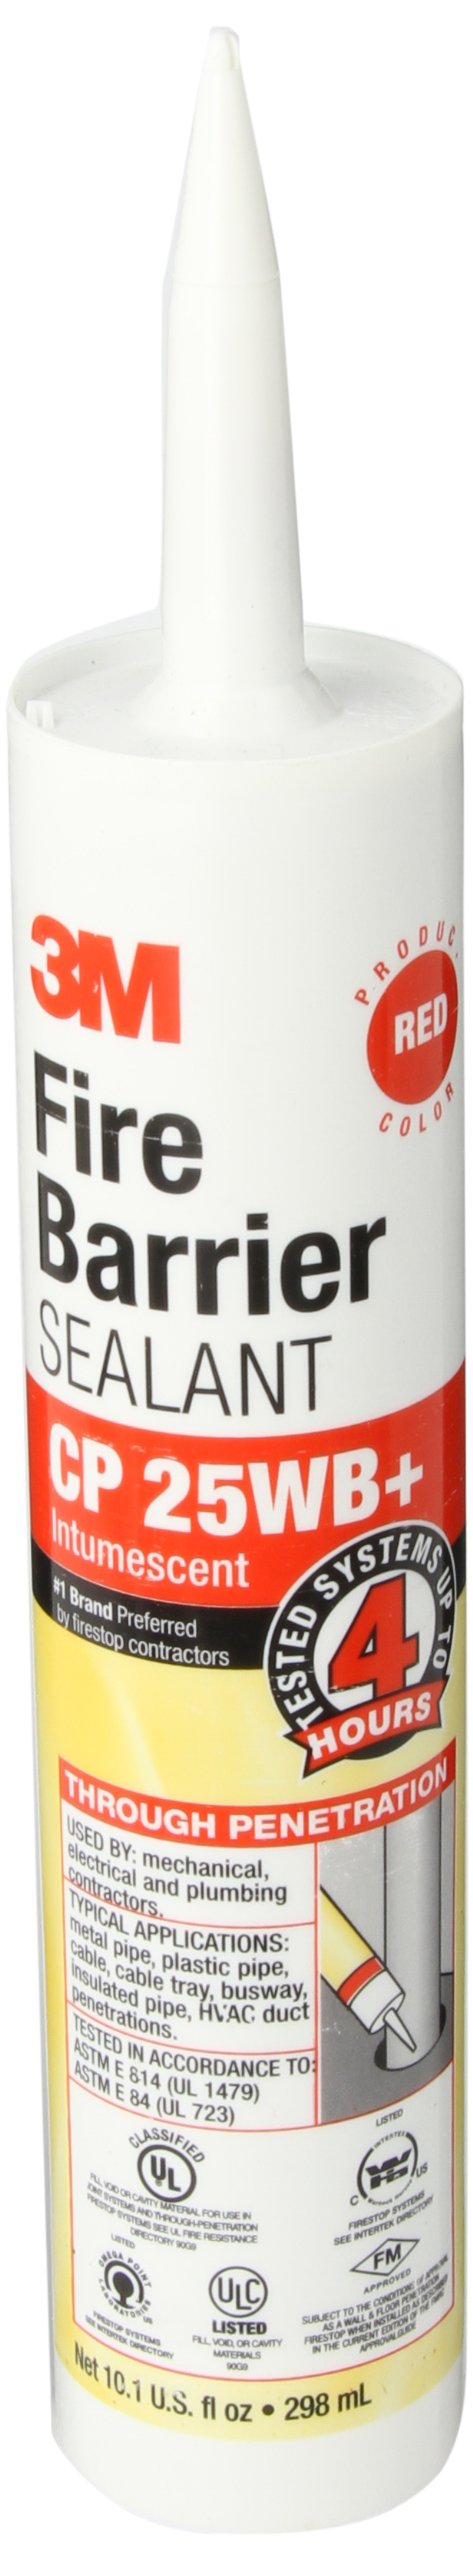 3M CP-25WB+/10.1 10.1 Oz. Fire Barrier Sealant (Pack of 1)